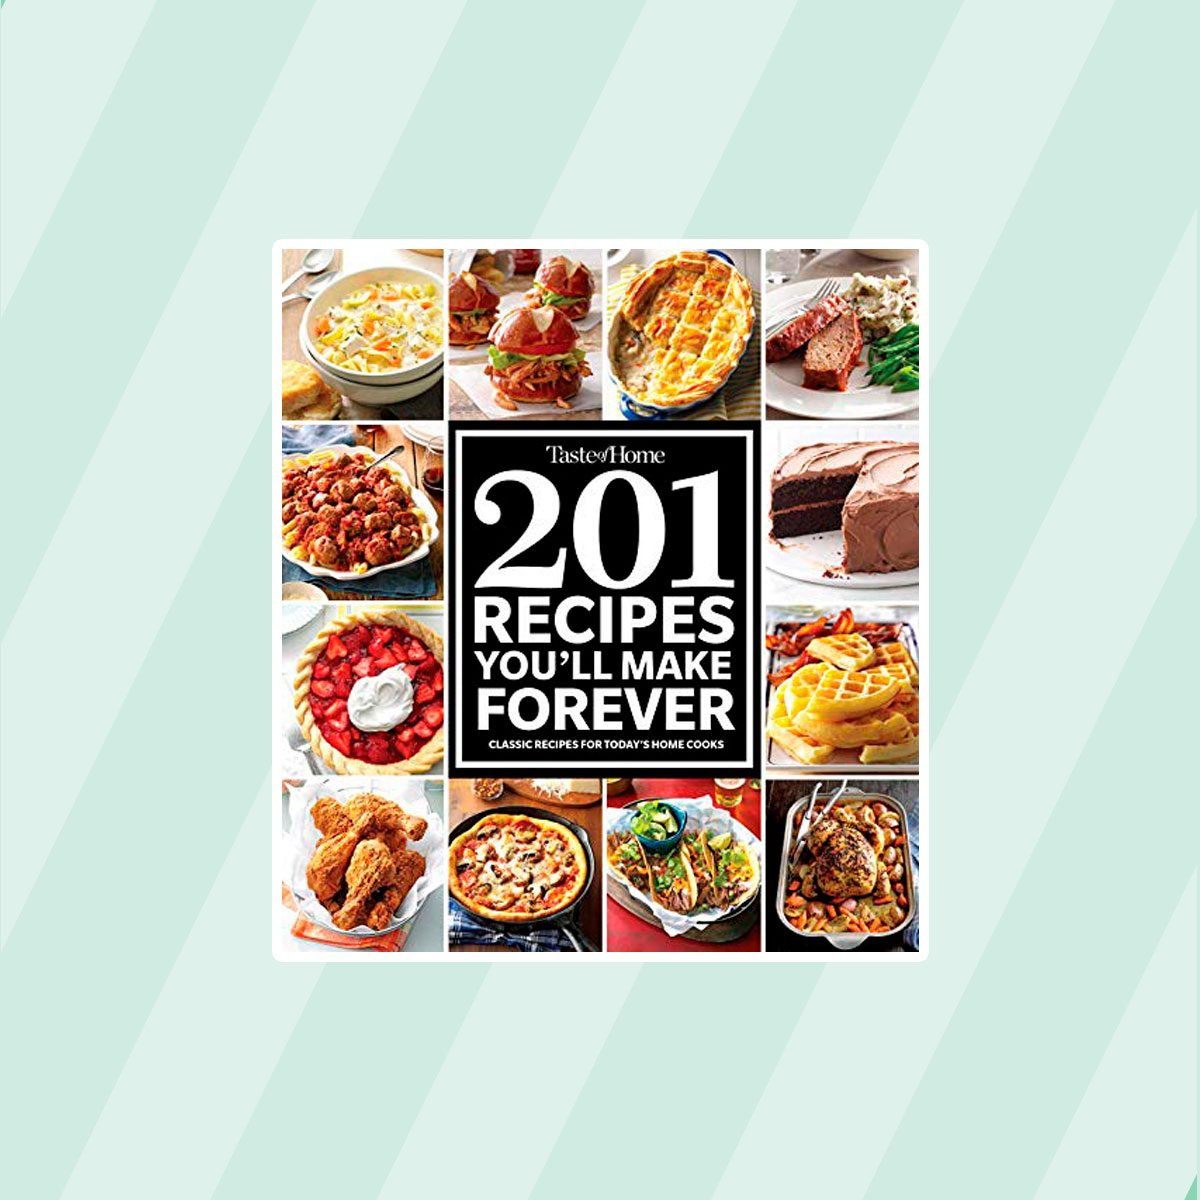 Taste of Home's 201 Recipes You'll Make Forever: Classic Recipes for Today's Home Cooks